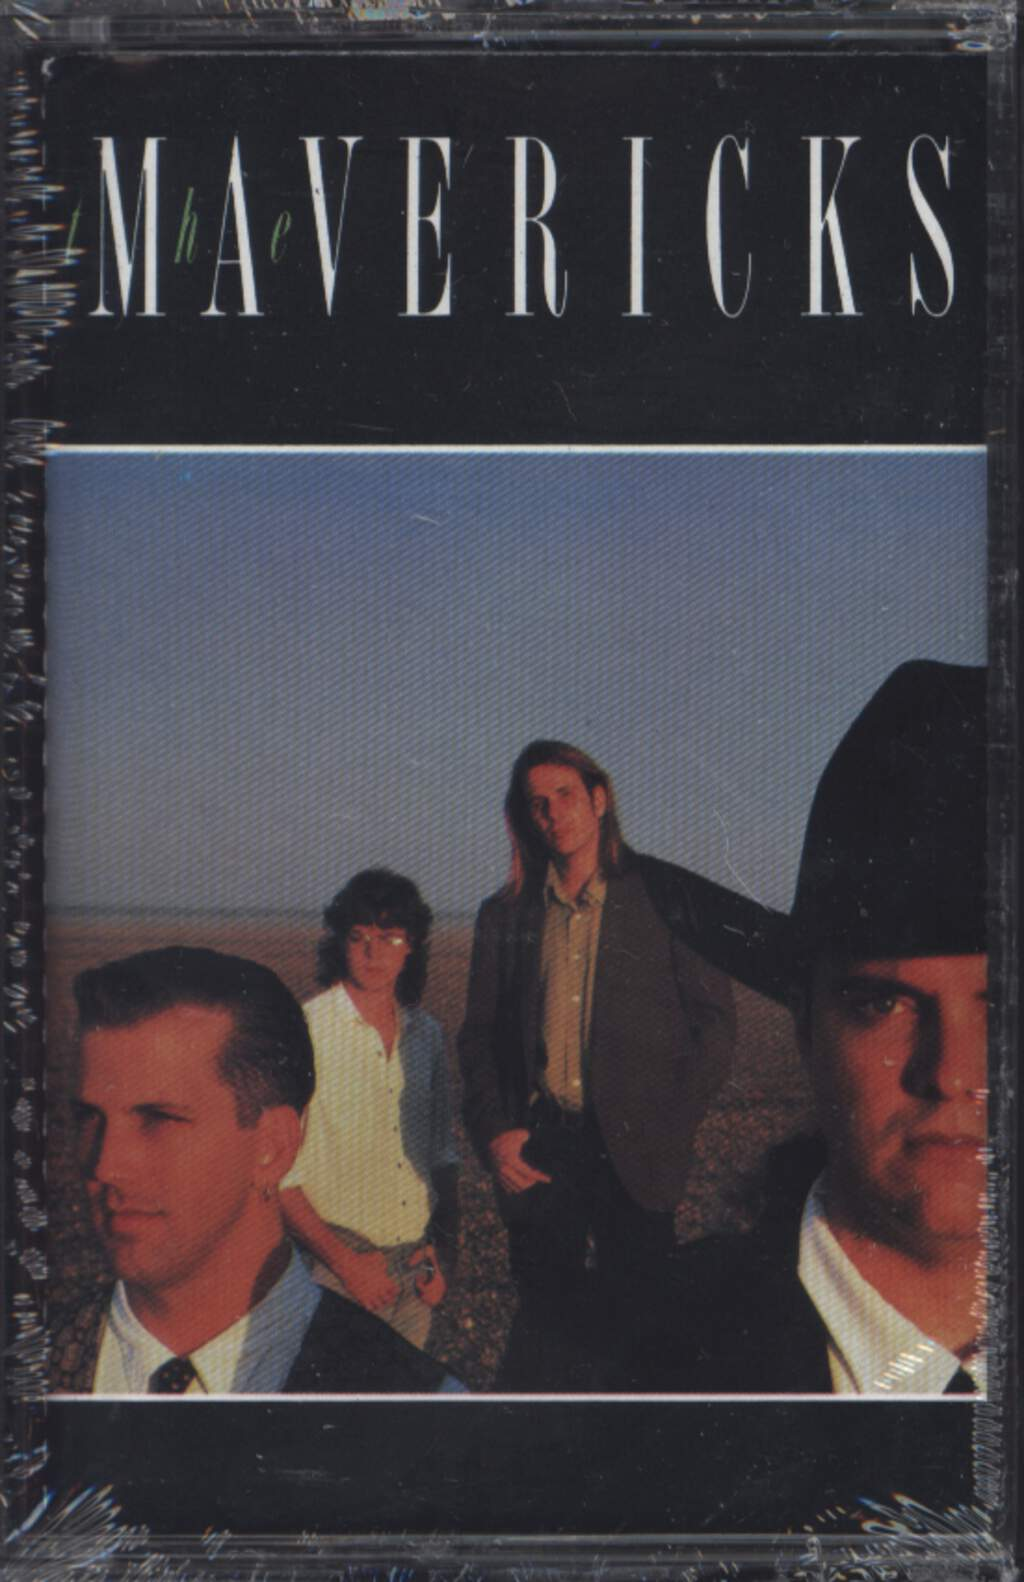 The Mavericks: The Mavericks, Compact Cassette